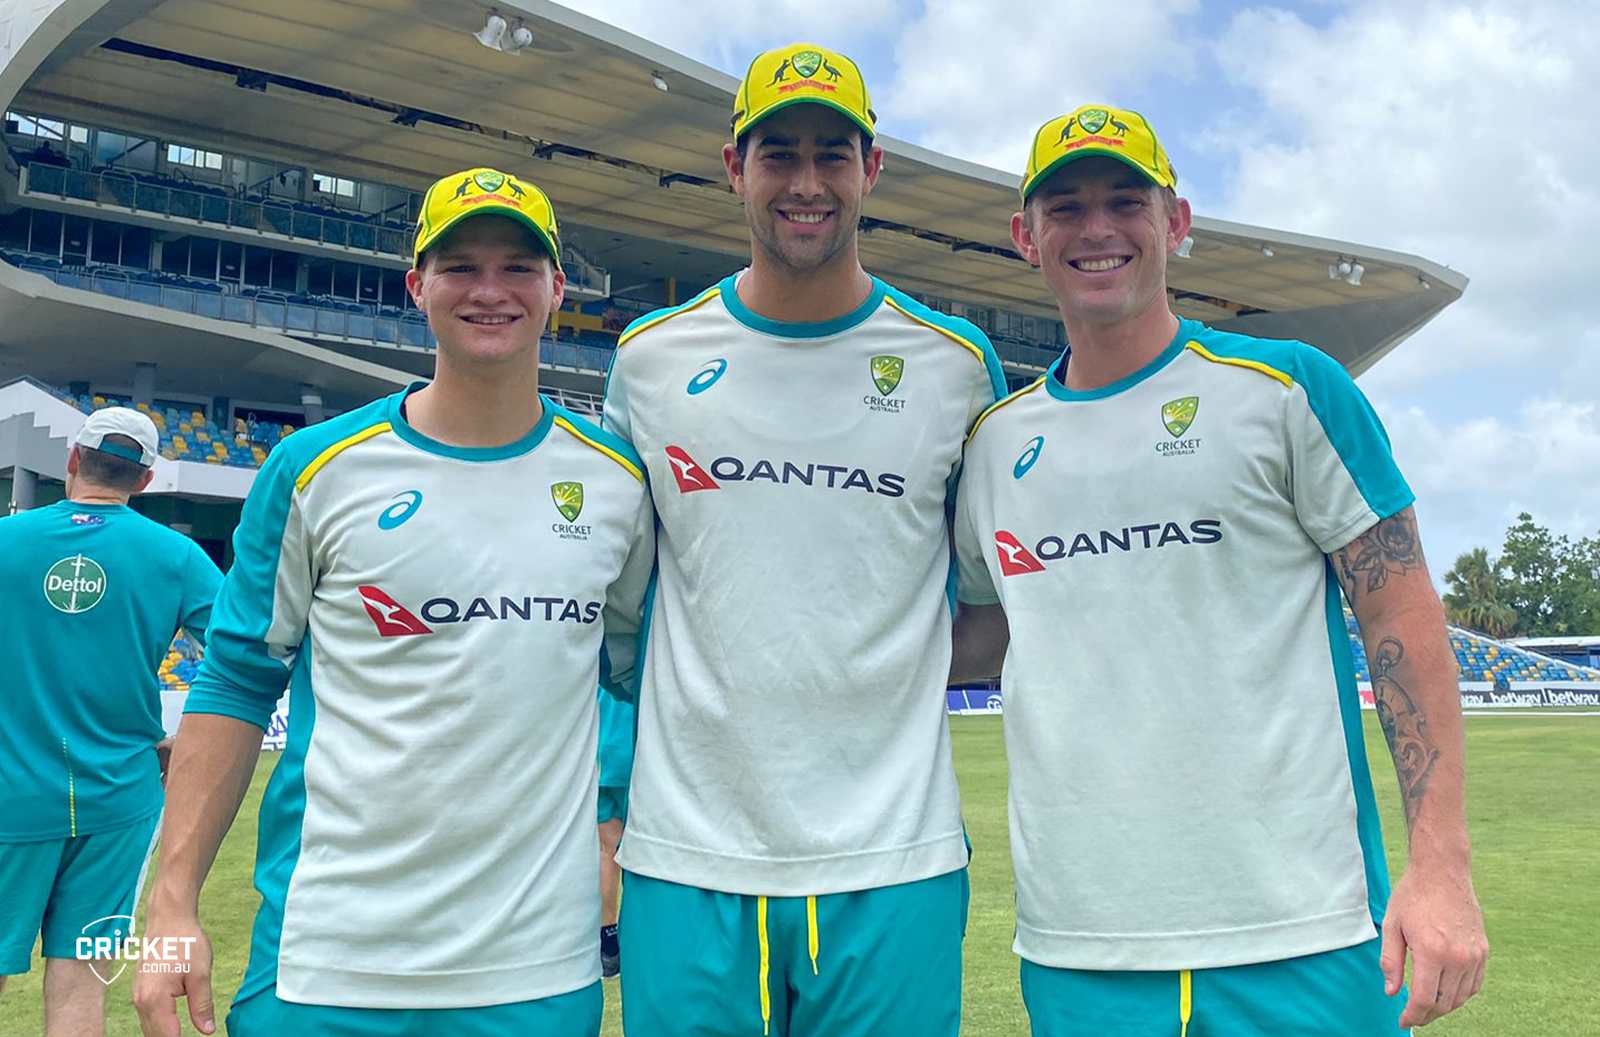 Wes flanked by fellow debutants Josh Philippe (l) and Ben McDermott // cricket.com.au